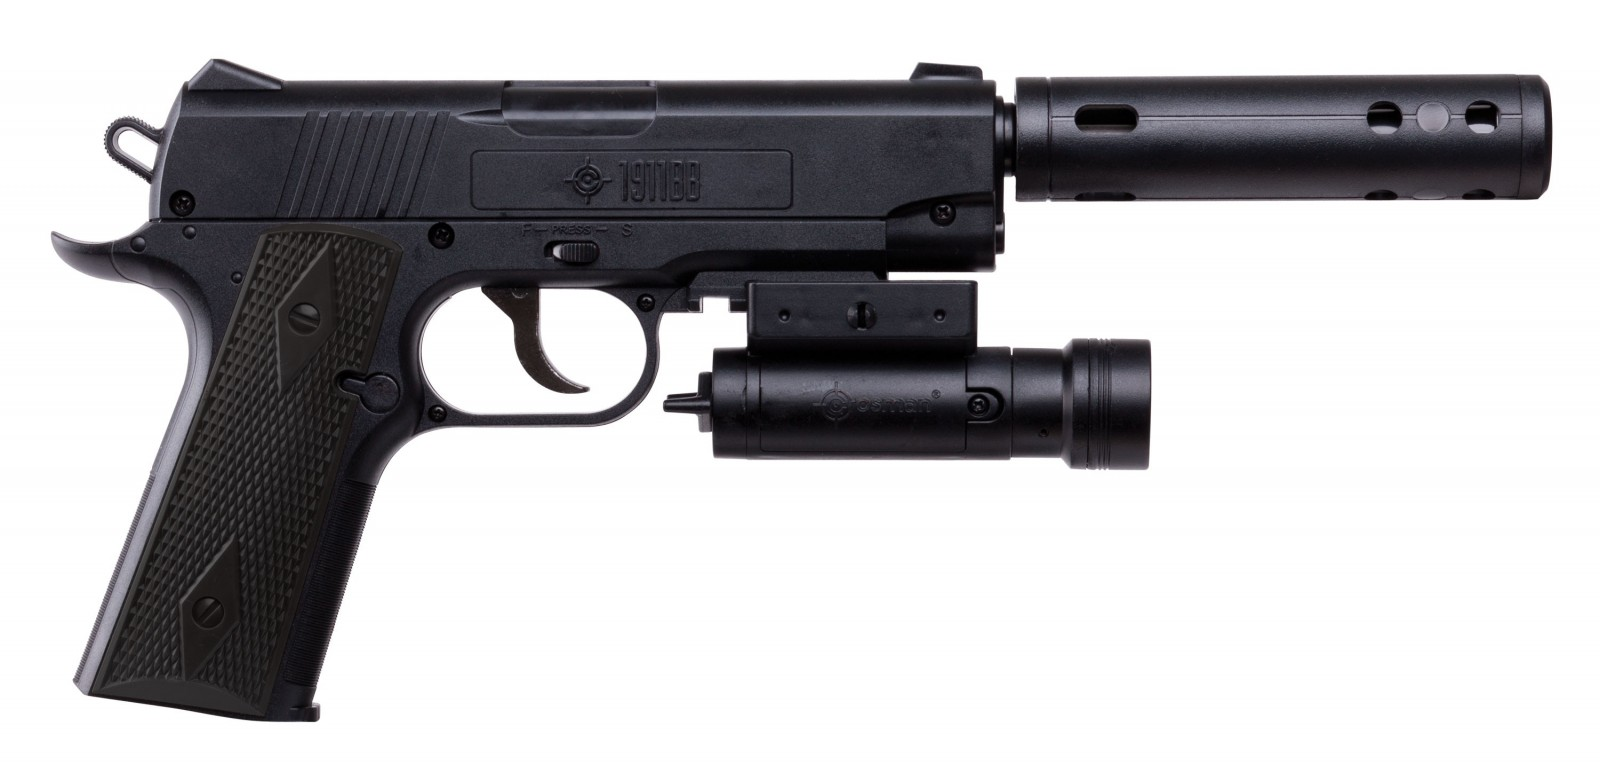 Airsoft pistols with silencers — diegamennathe